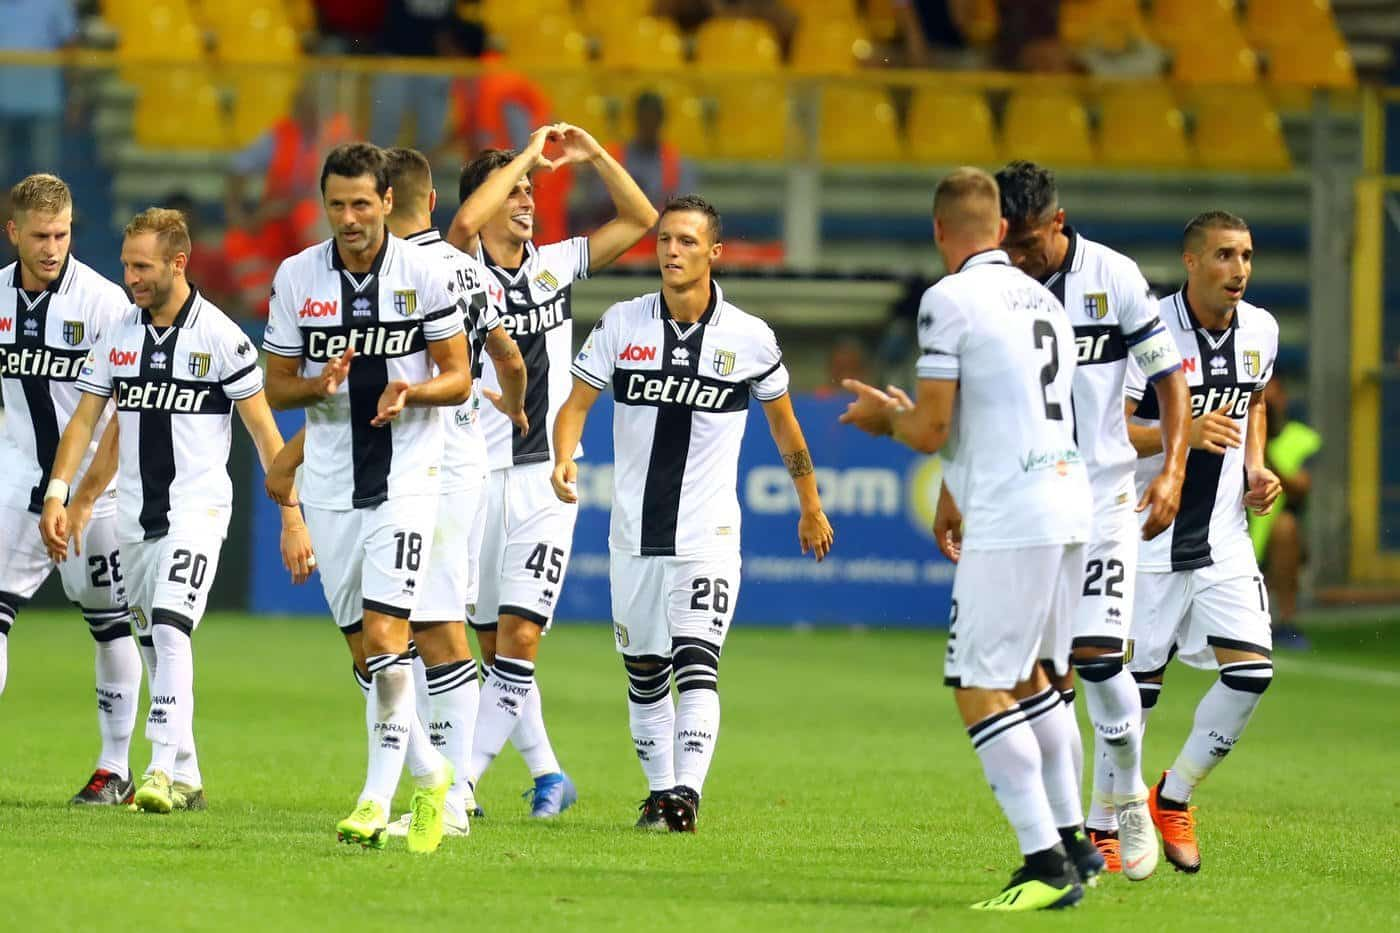 parma udinese